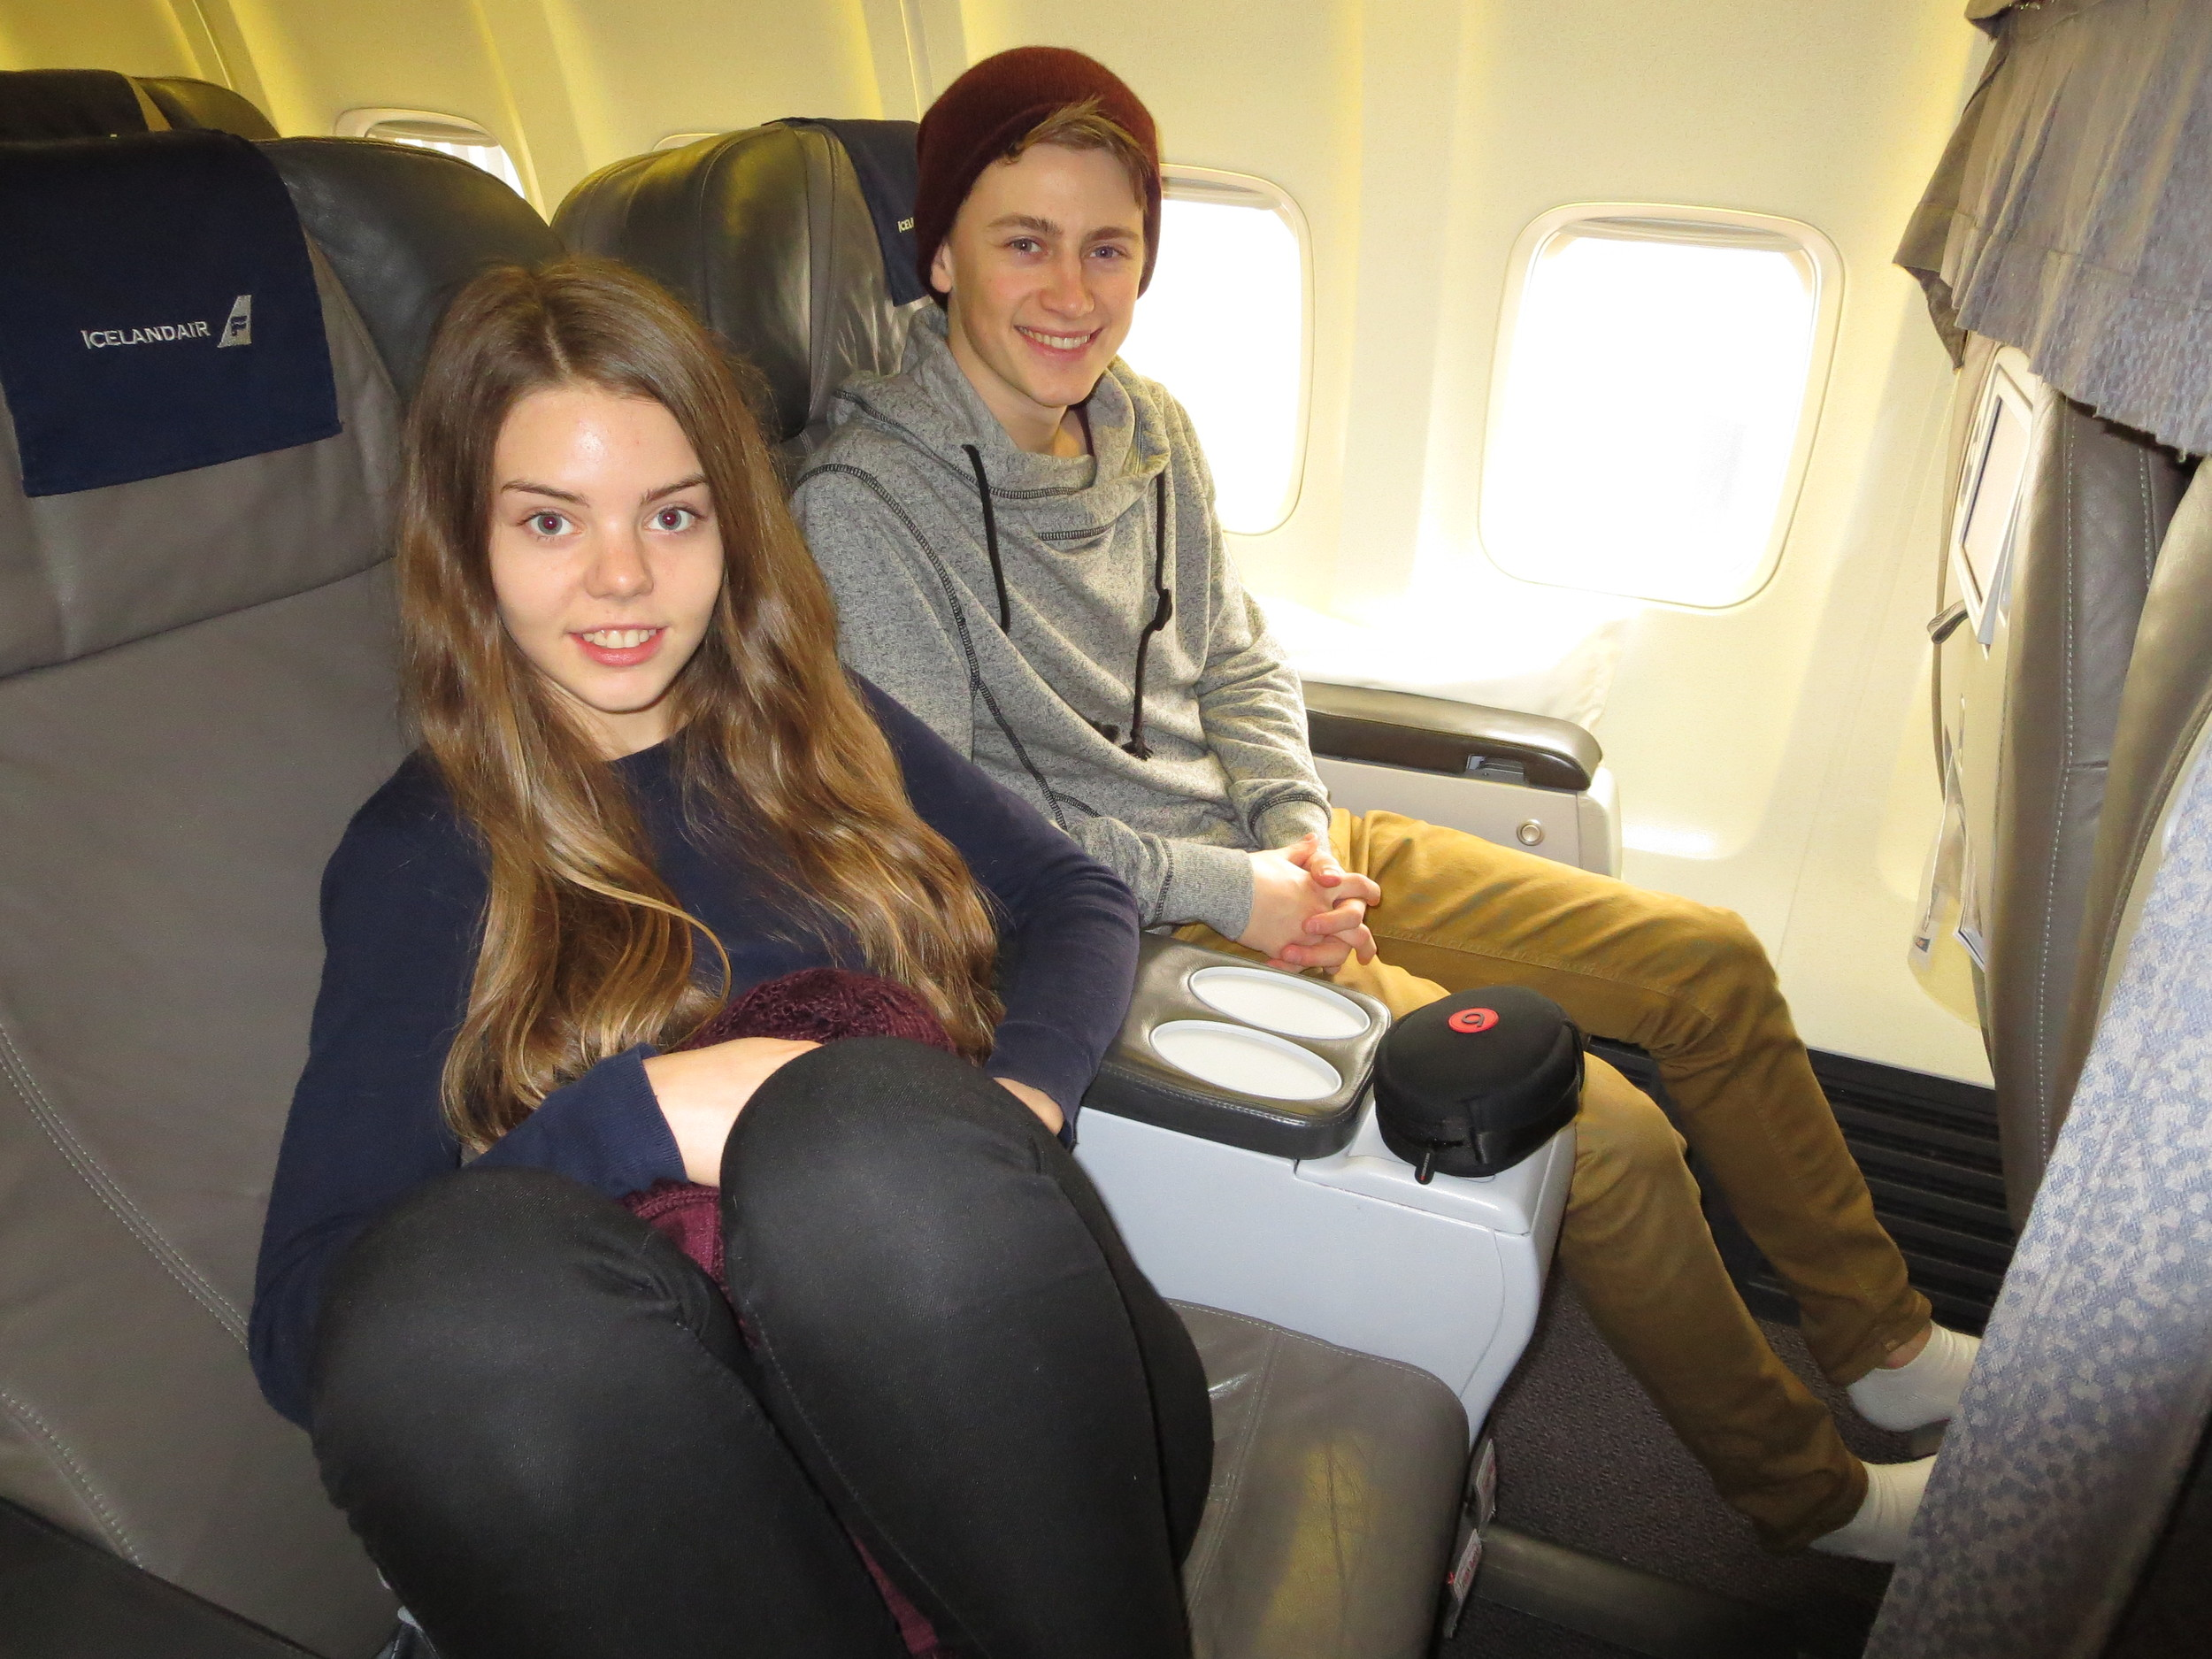 Dora and Atli enjoying their very comfy flight home